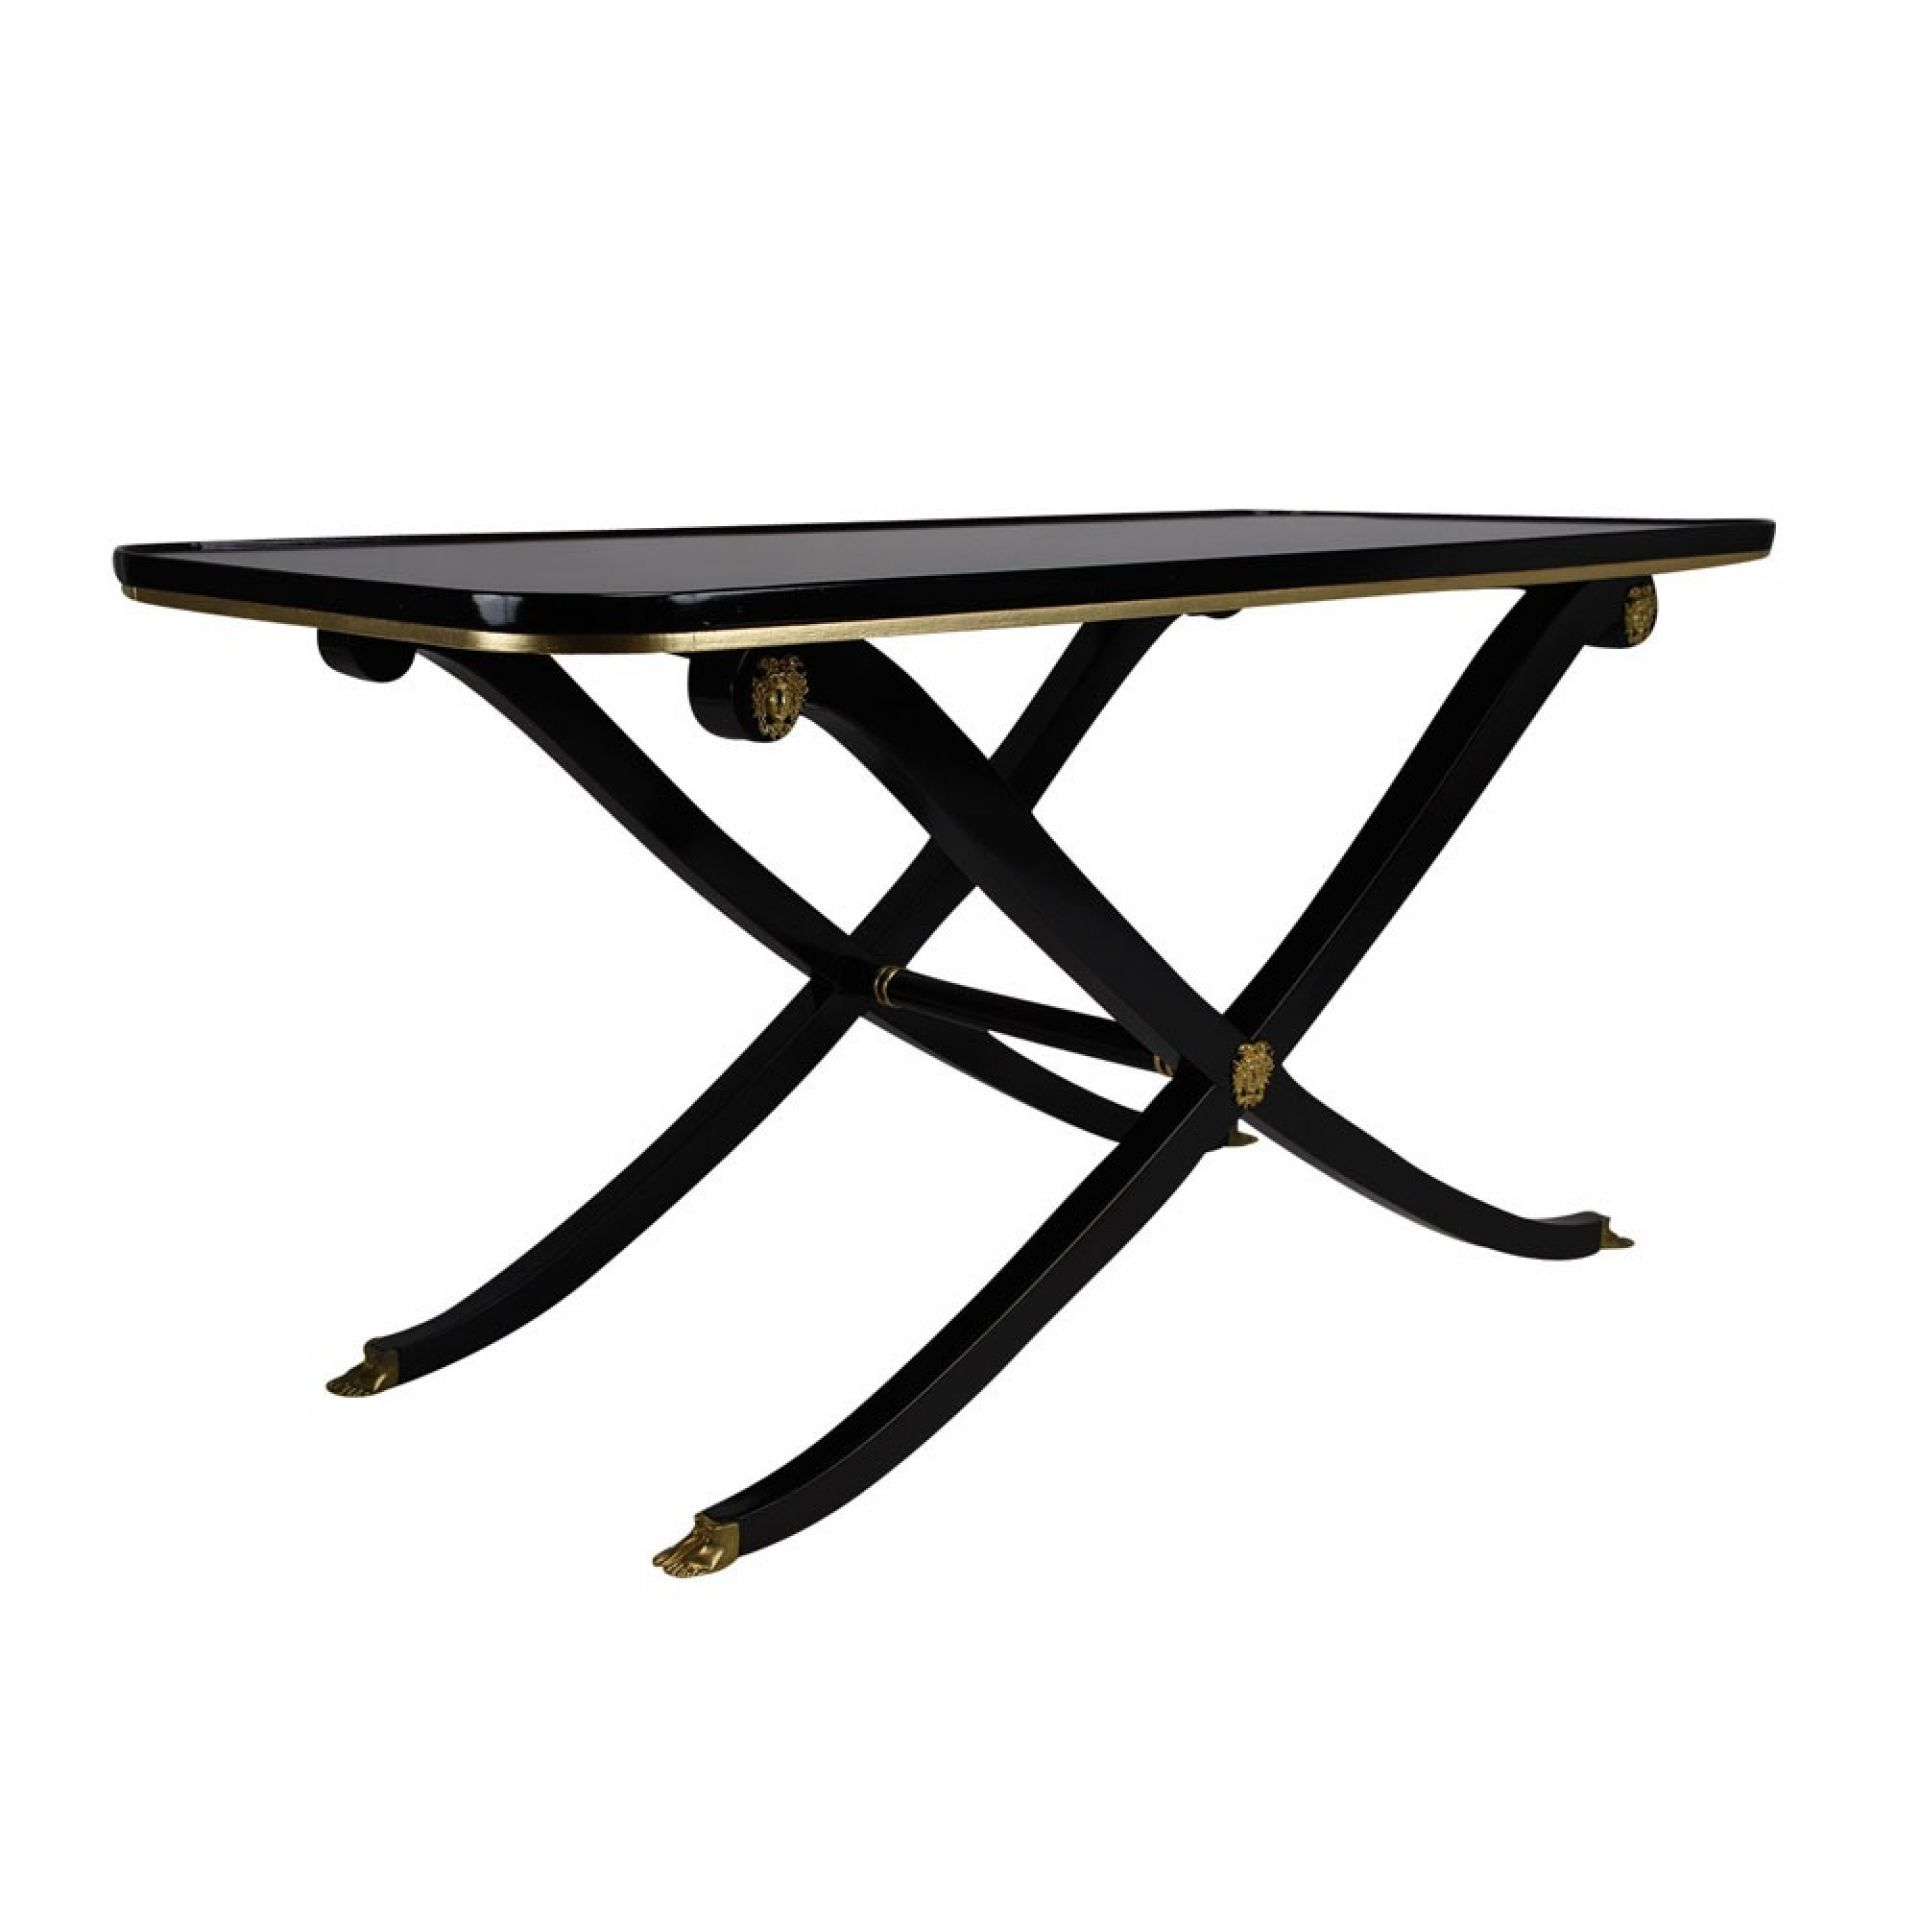 French Empire Style Ebonized Coffee Table